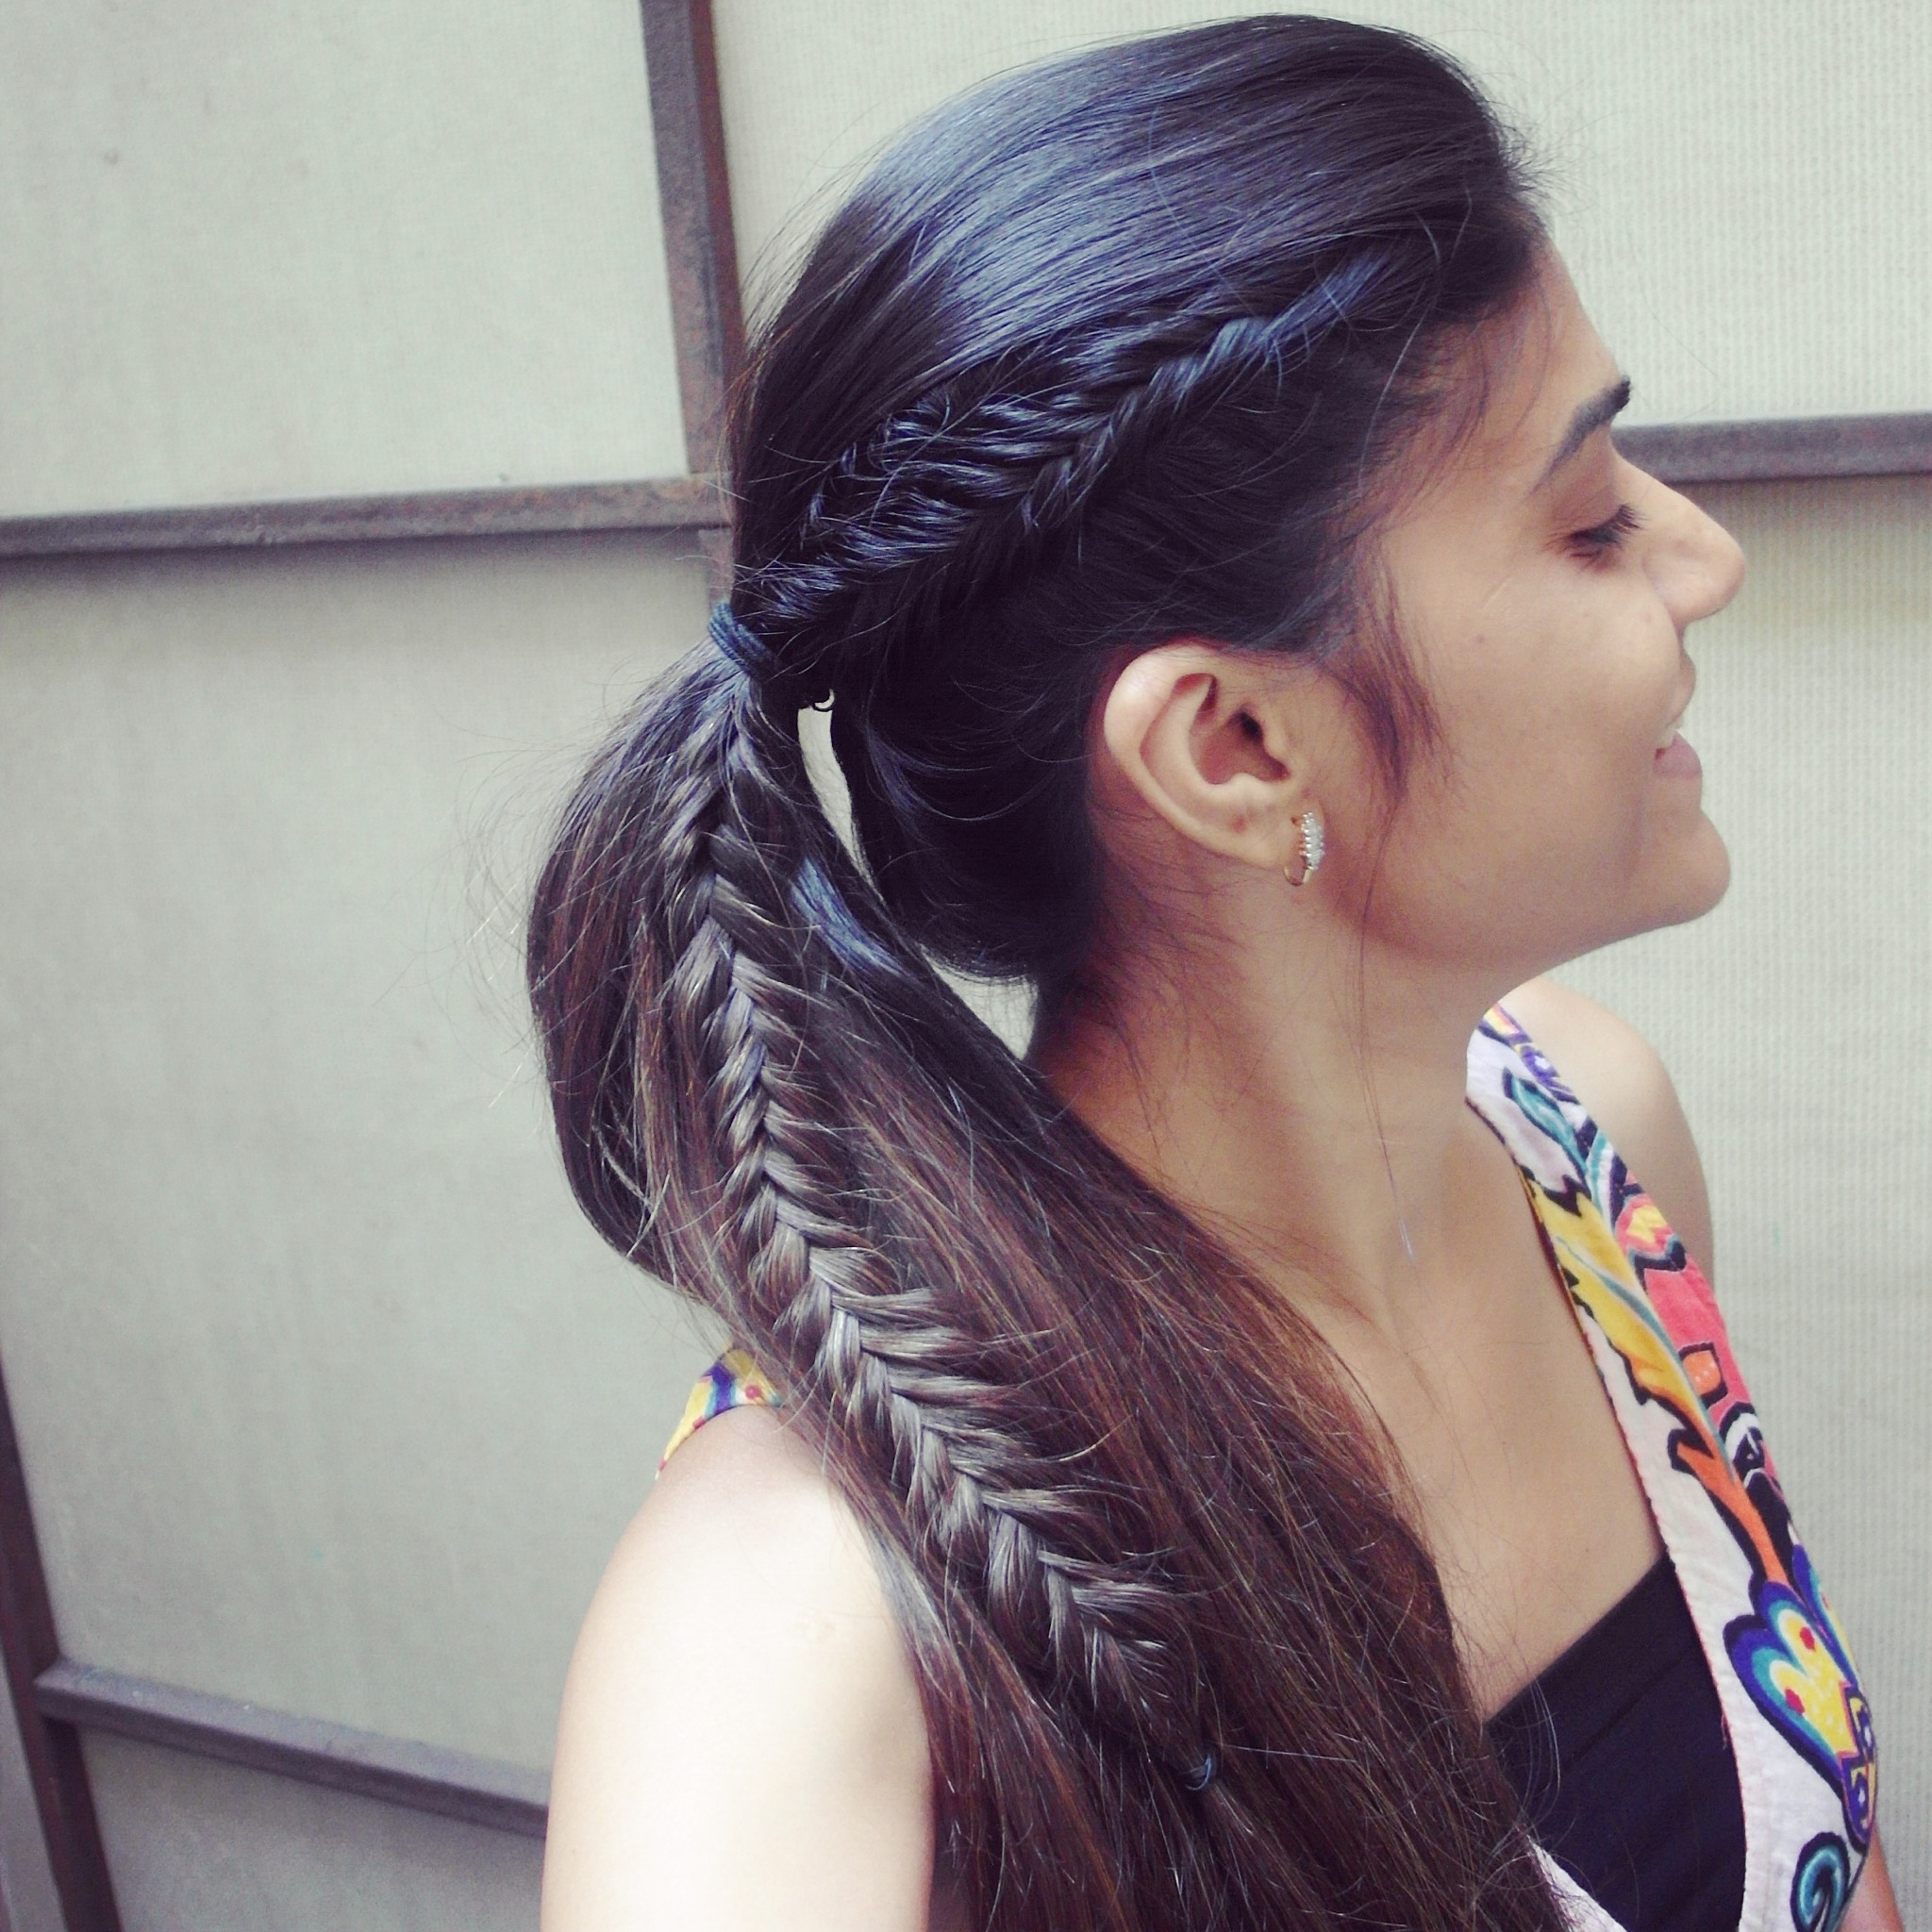 Tanvi Vayla » Fishtail Braid Into High Ponytail Pertaining To 2018 Fishtail Braid Ponytails (View 13 of 20)